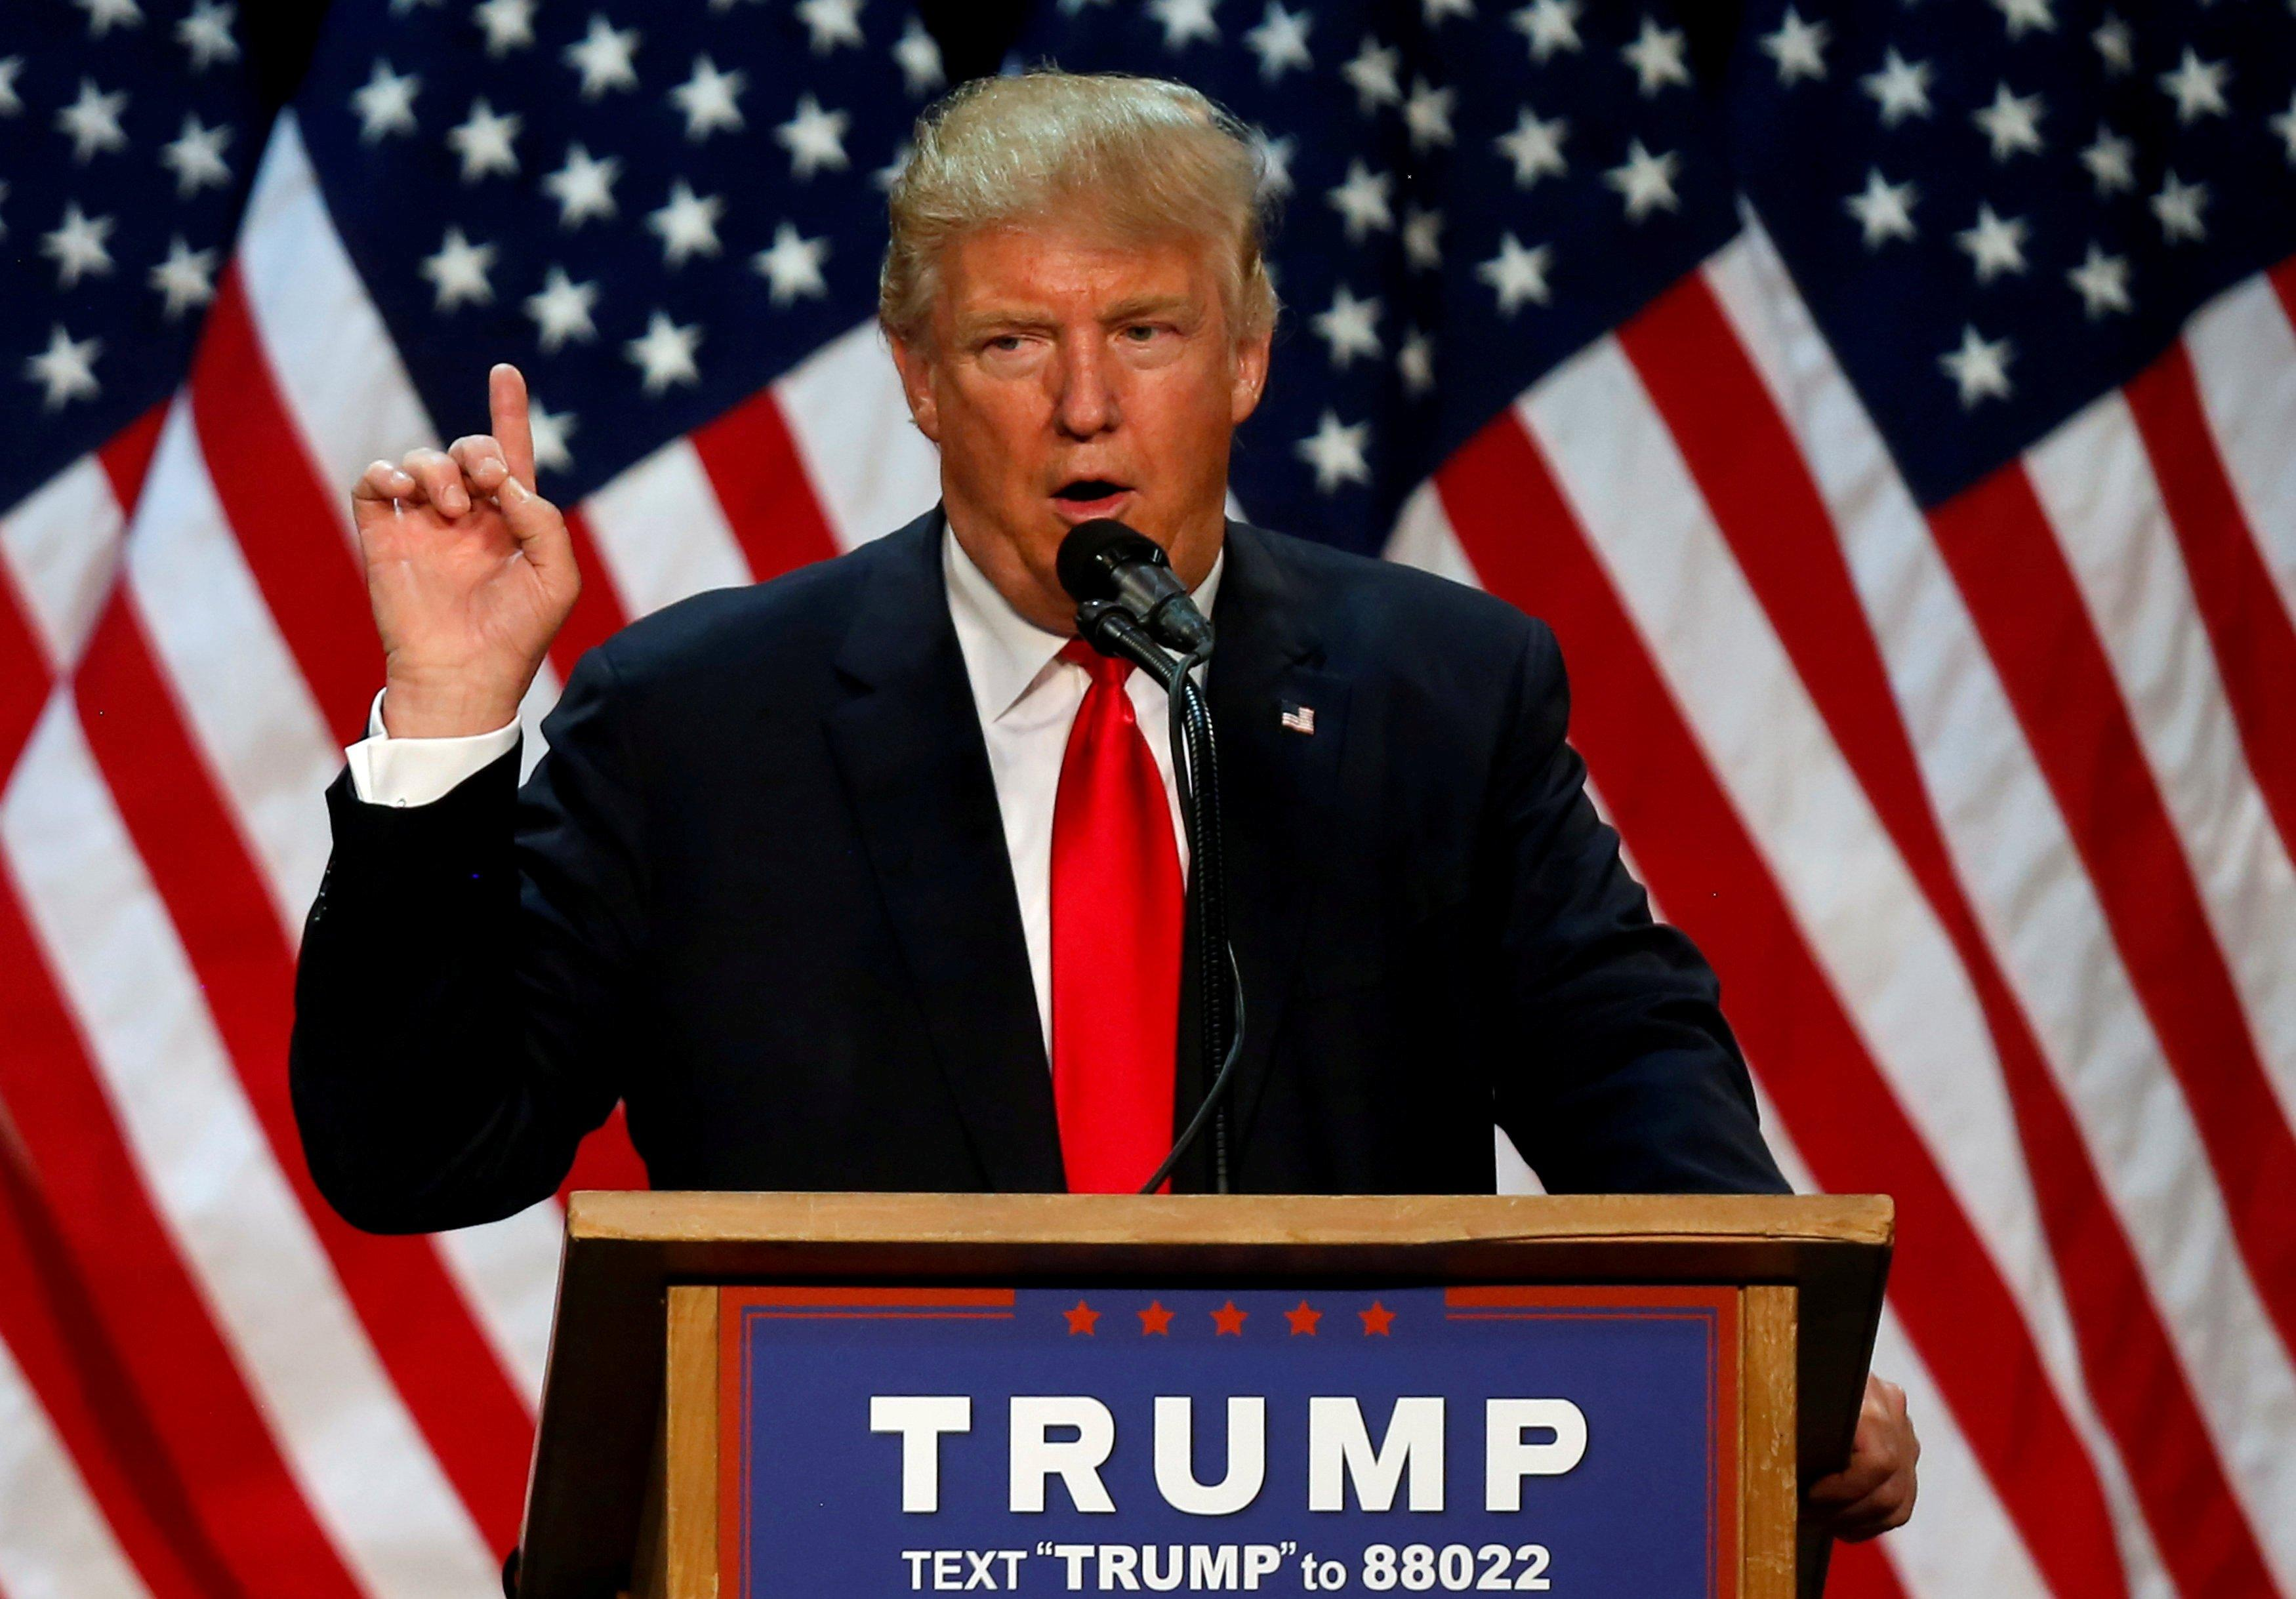 Trump Hits the Panic Button at the Hint of a Third Party Run